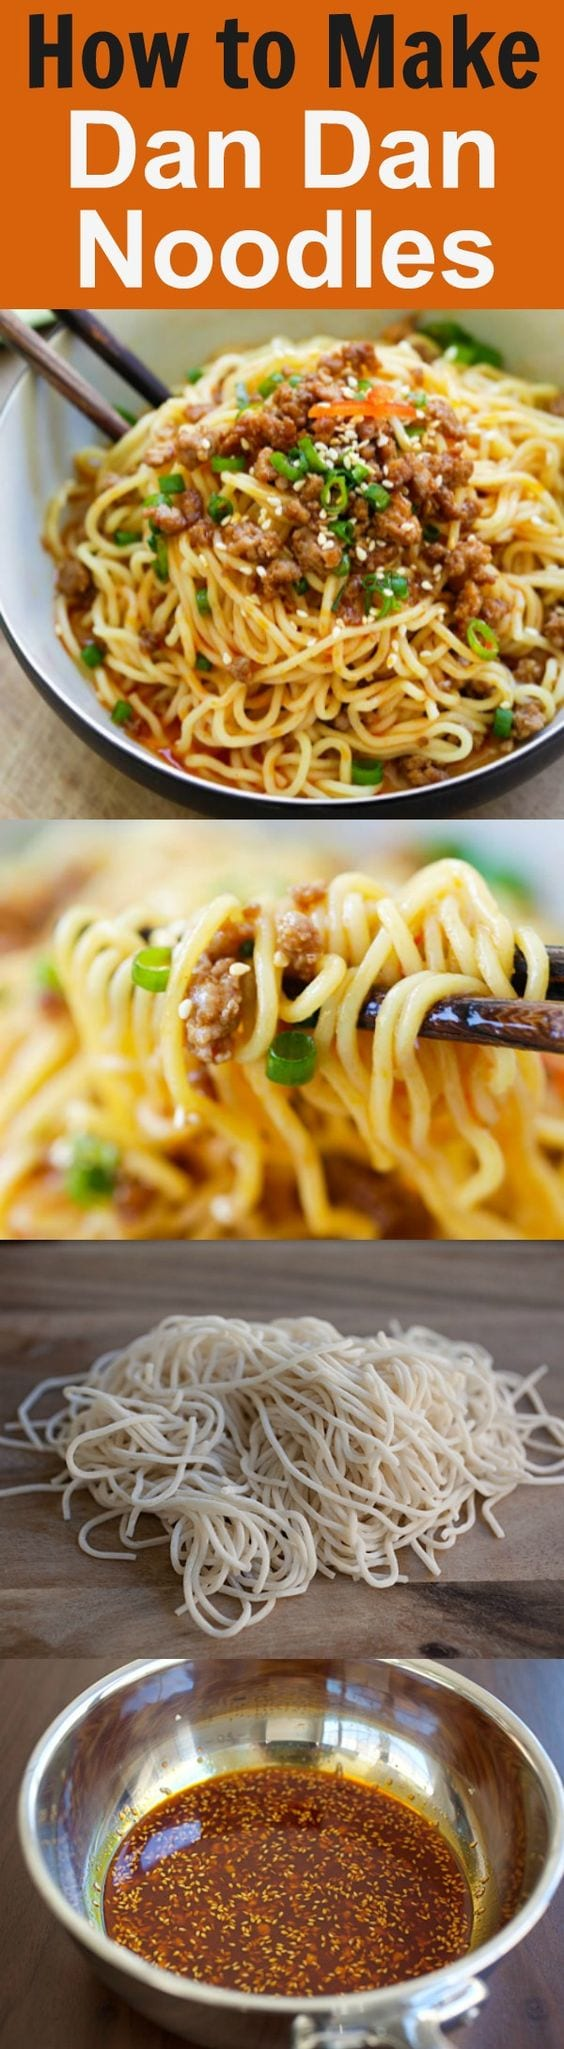 Dan Dan Noodles - Savory and spicy Sichuan noodles with ground meat. Dan Dan Mian is a delicious and hearty meal. Learn it with this easy recipe. | rasamalaysia.com